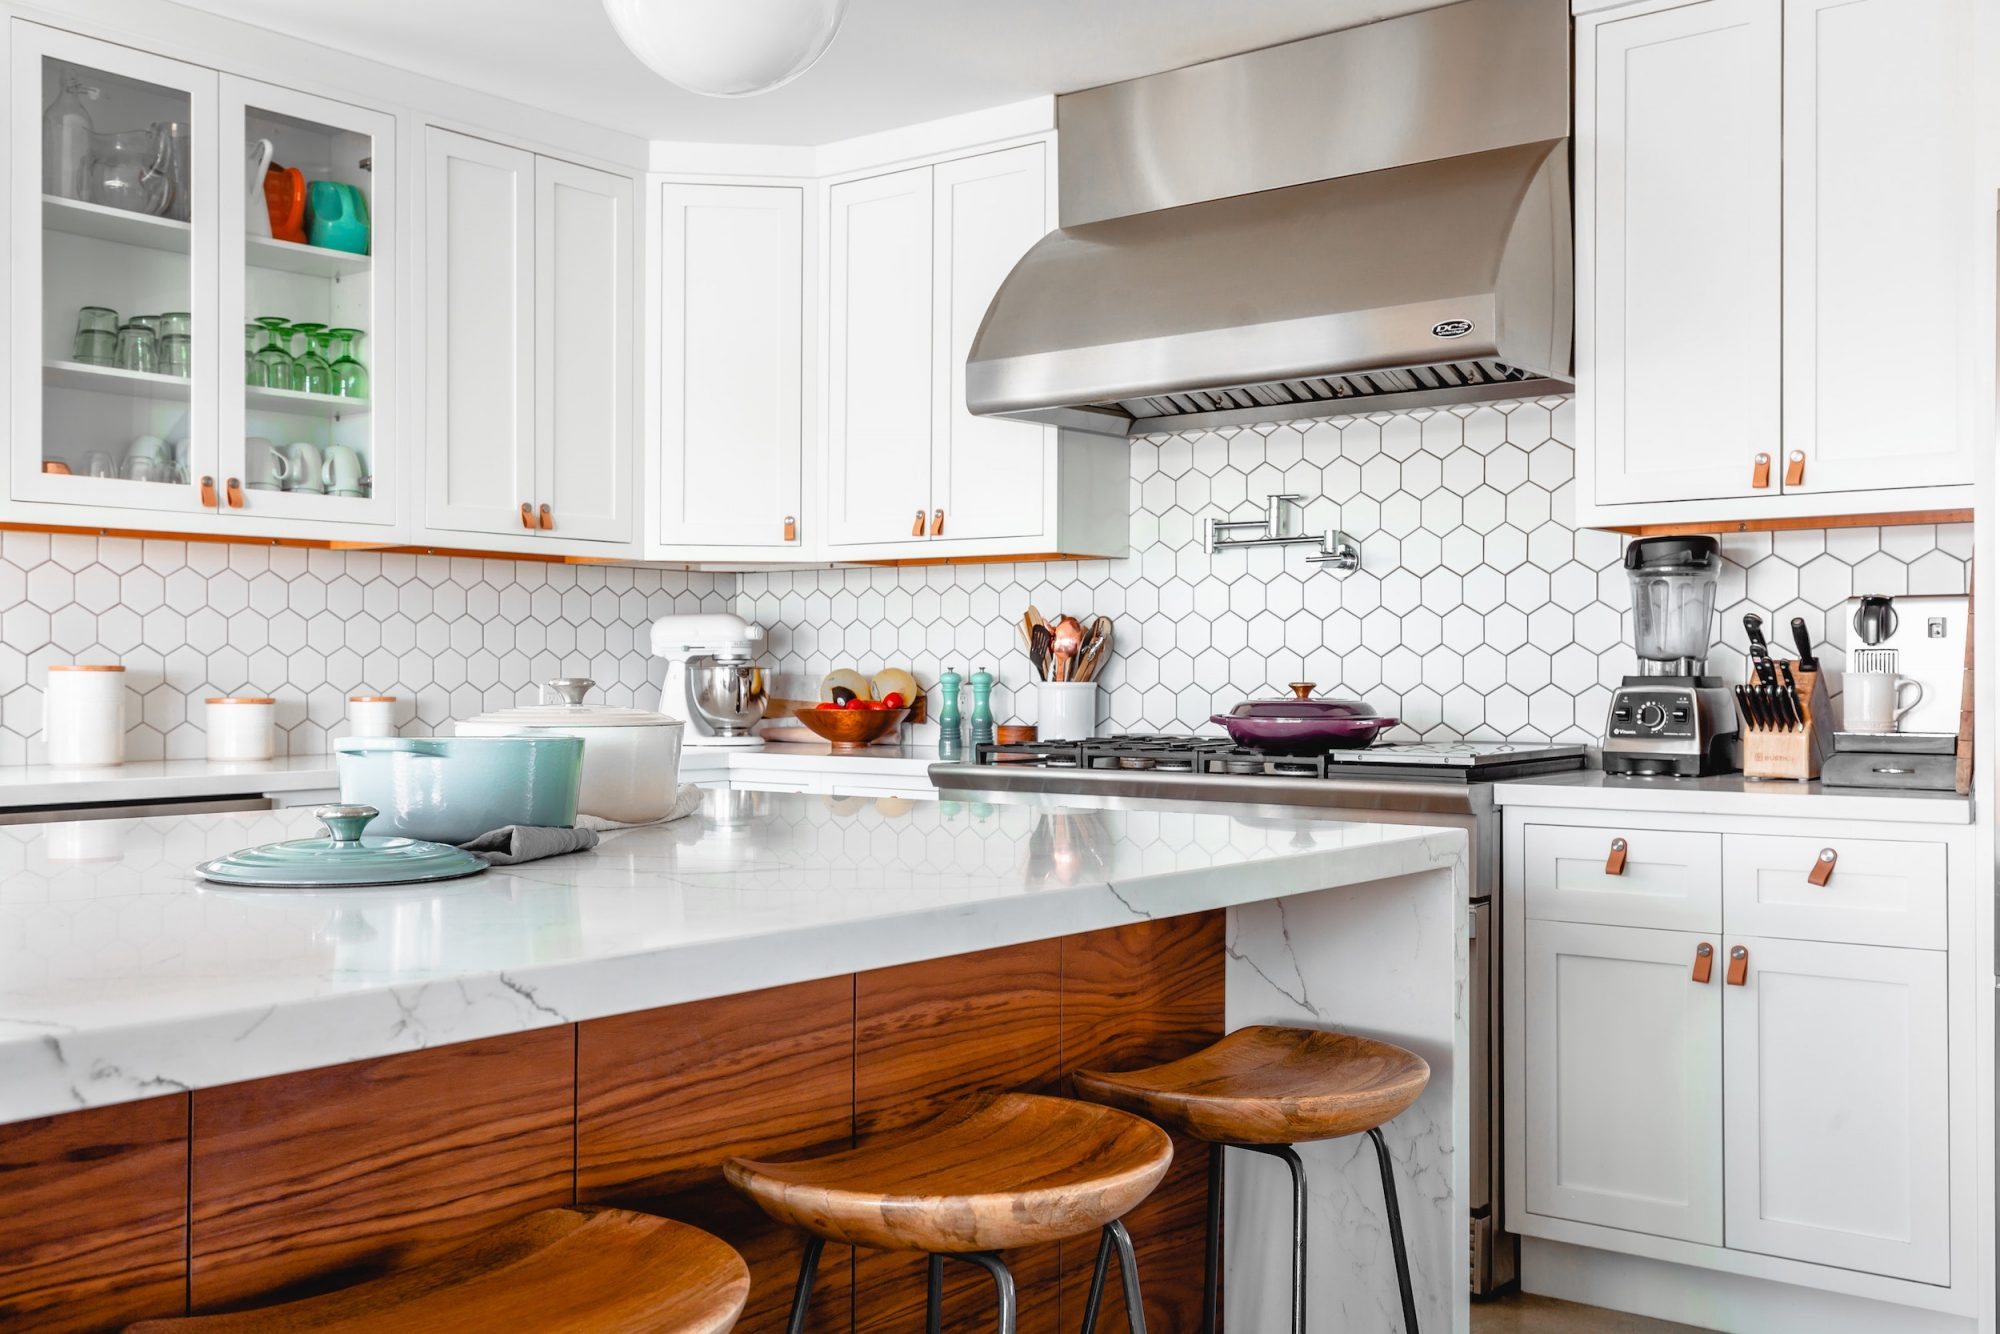 Kitchen with marble countertop and waterfall island